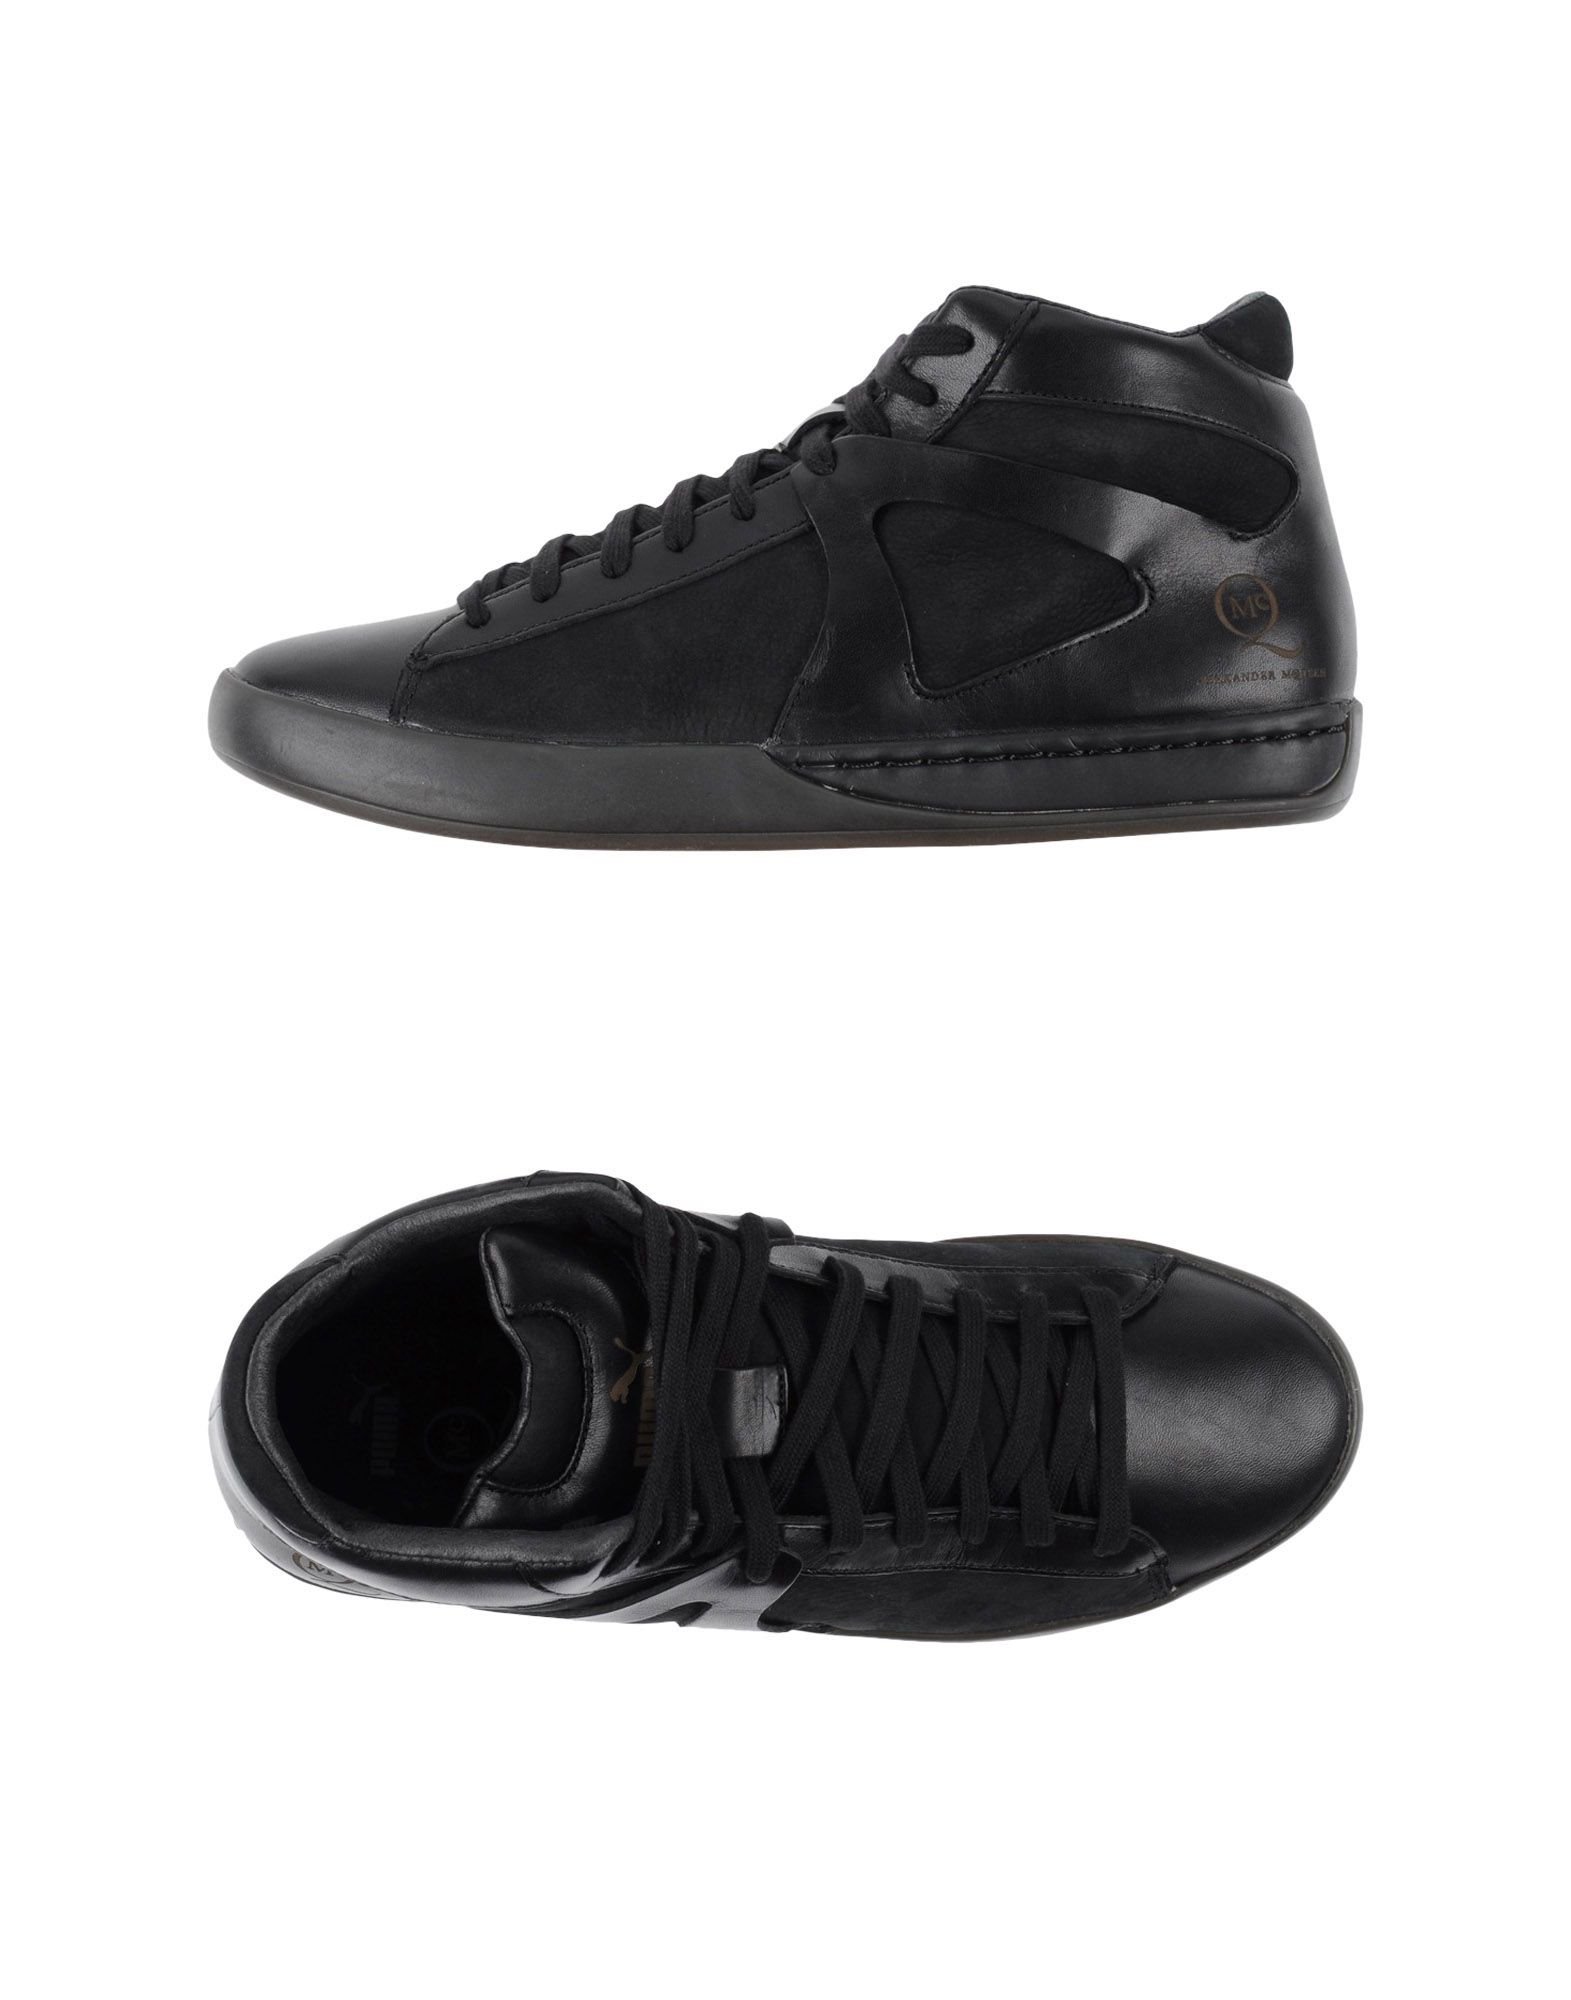 Lyst - Alexander McQueen X Puma Move Leather and Mesh High-Top ... f7239471f294